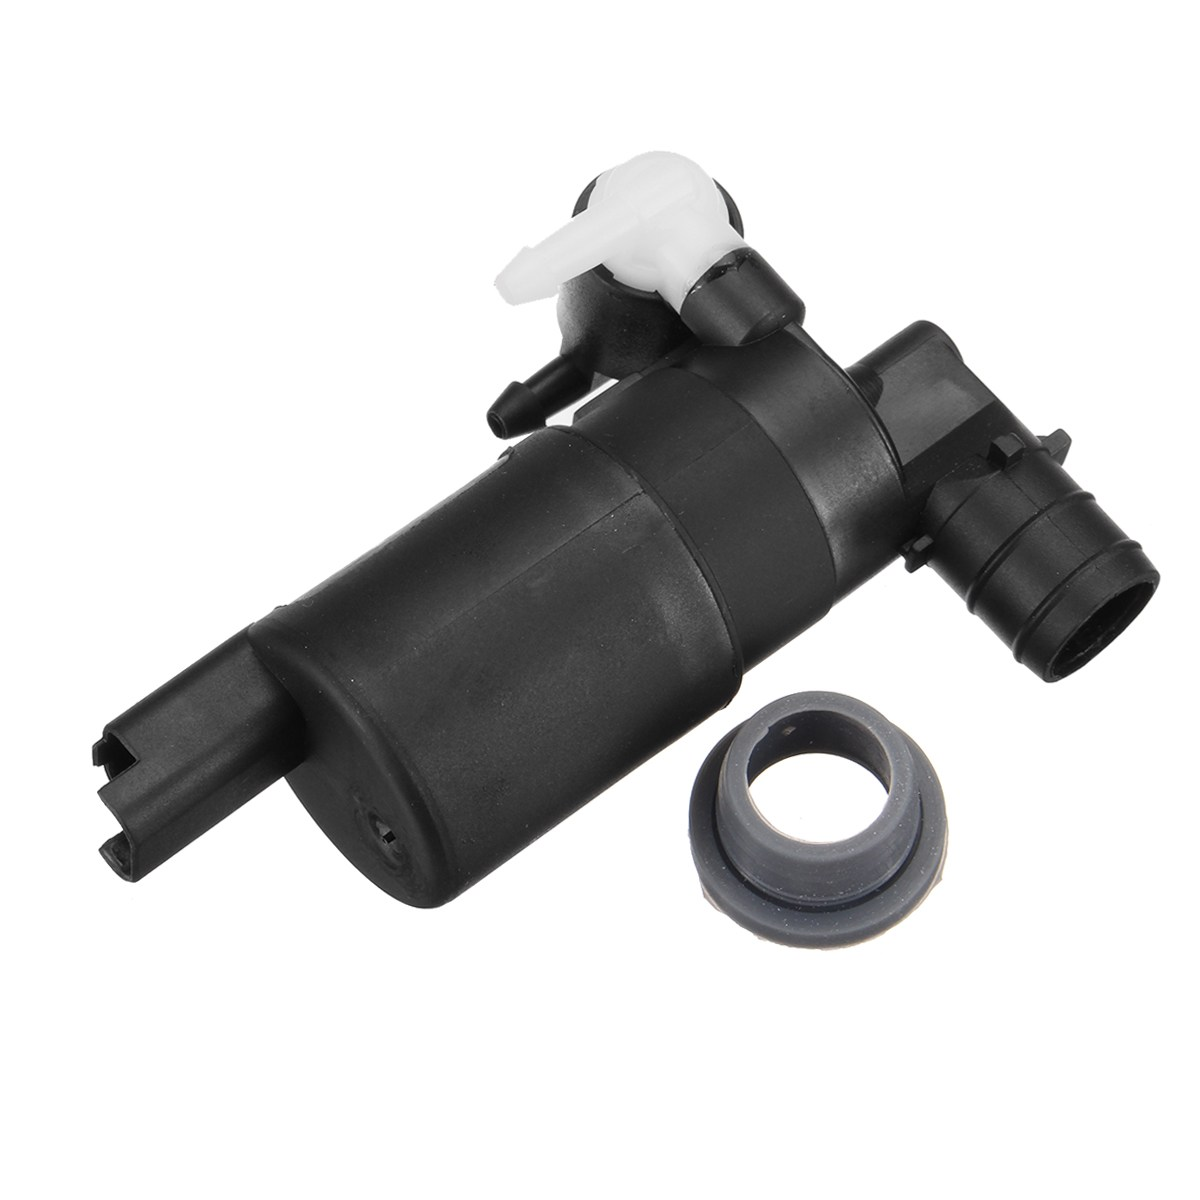 1pc 12V Windshield Washer Blcak Pump Easy installation Direct Replacement